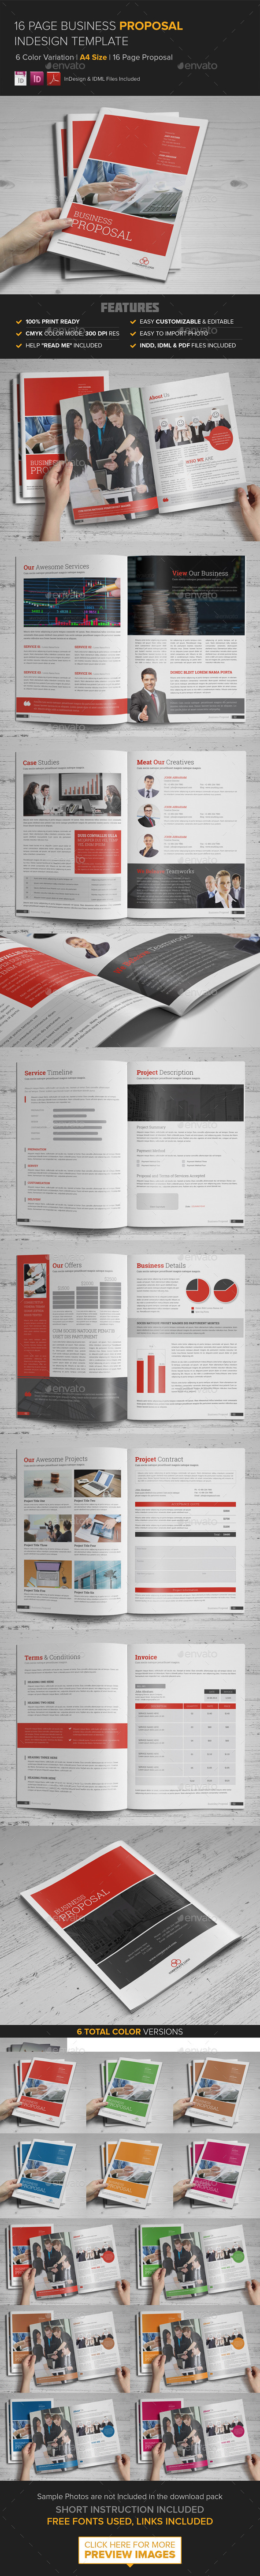 Indesign proposal graphics designs templates flashek Image collections